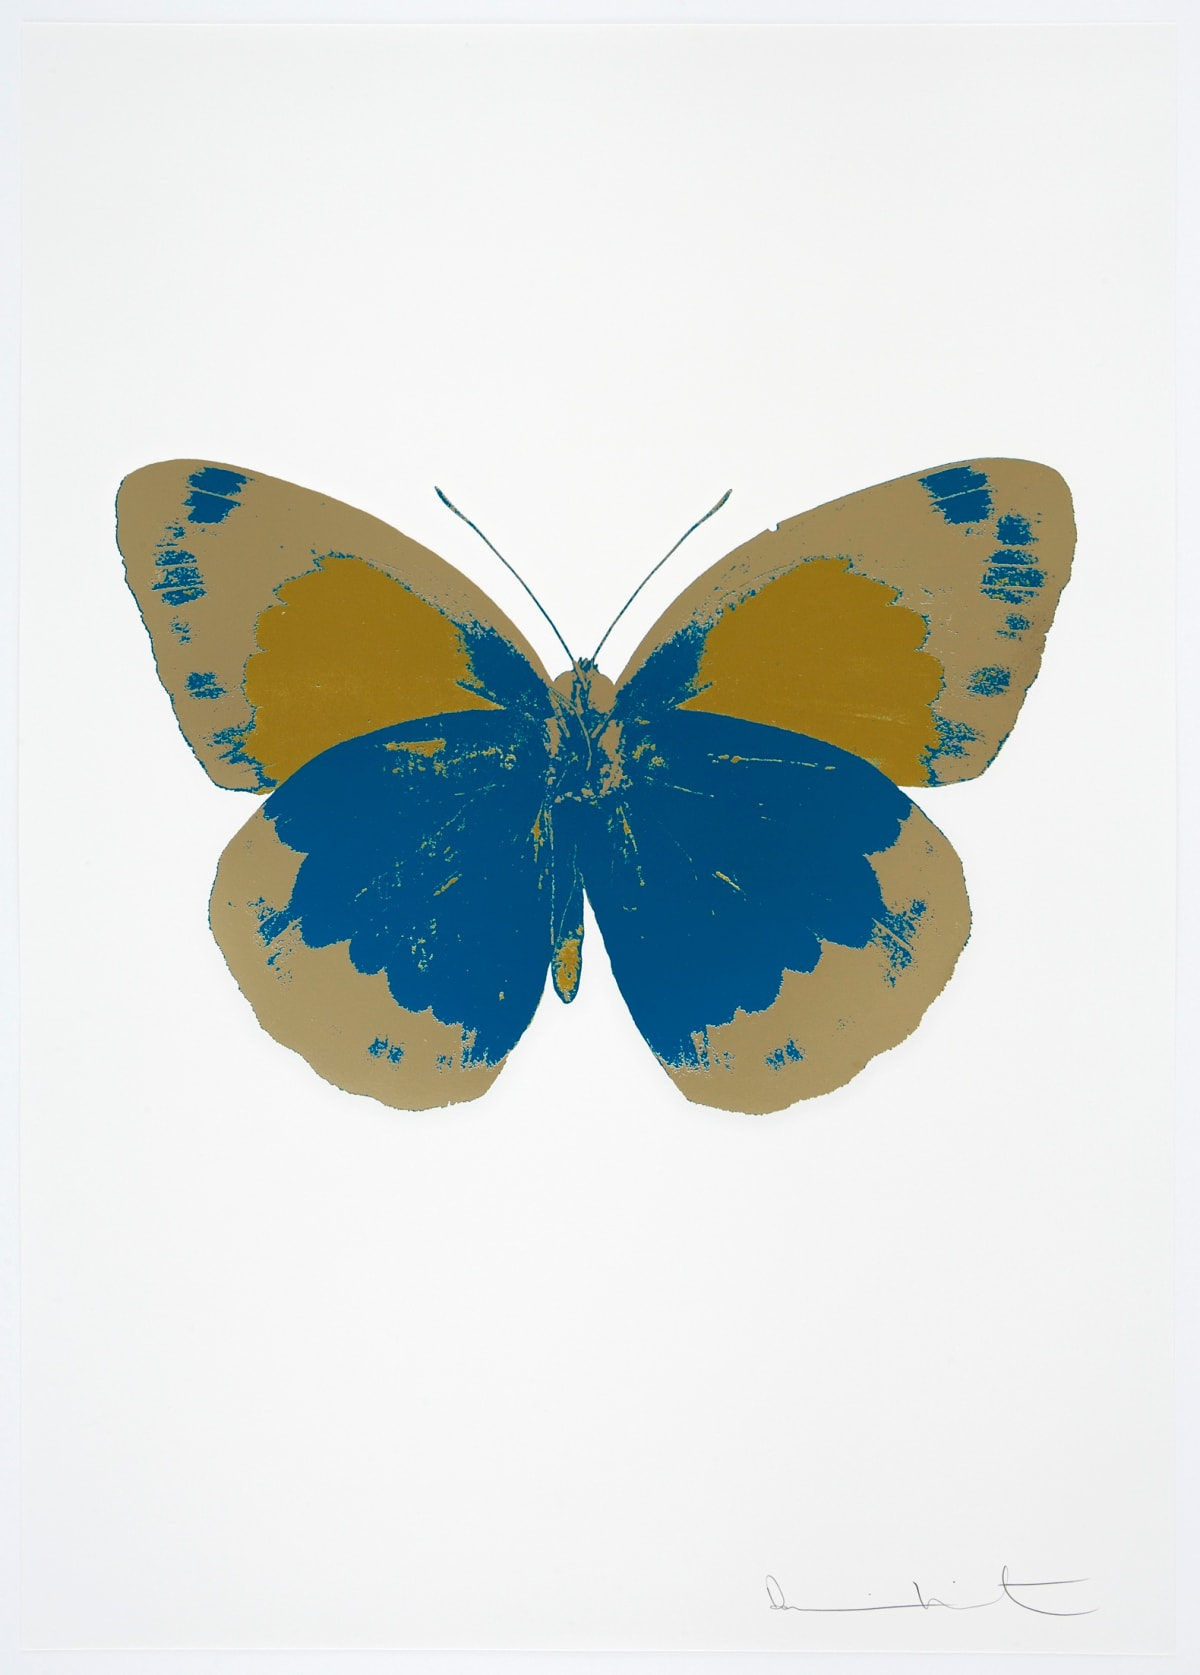 Damien Hirst The Souls II - Turquoise/Cool Gold/Oriental Gold, 2010 3 colour foil block on 300gsm Arches 88 archival paper. Signed and numbered. Published by Paul Stolper and Other Criteria 72 x 51cm OC7875 / 658-58 Edition of 15